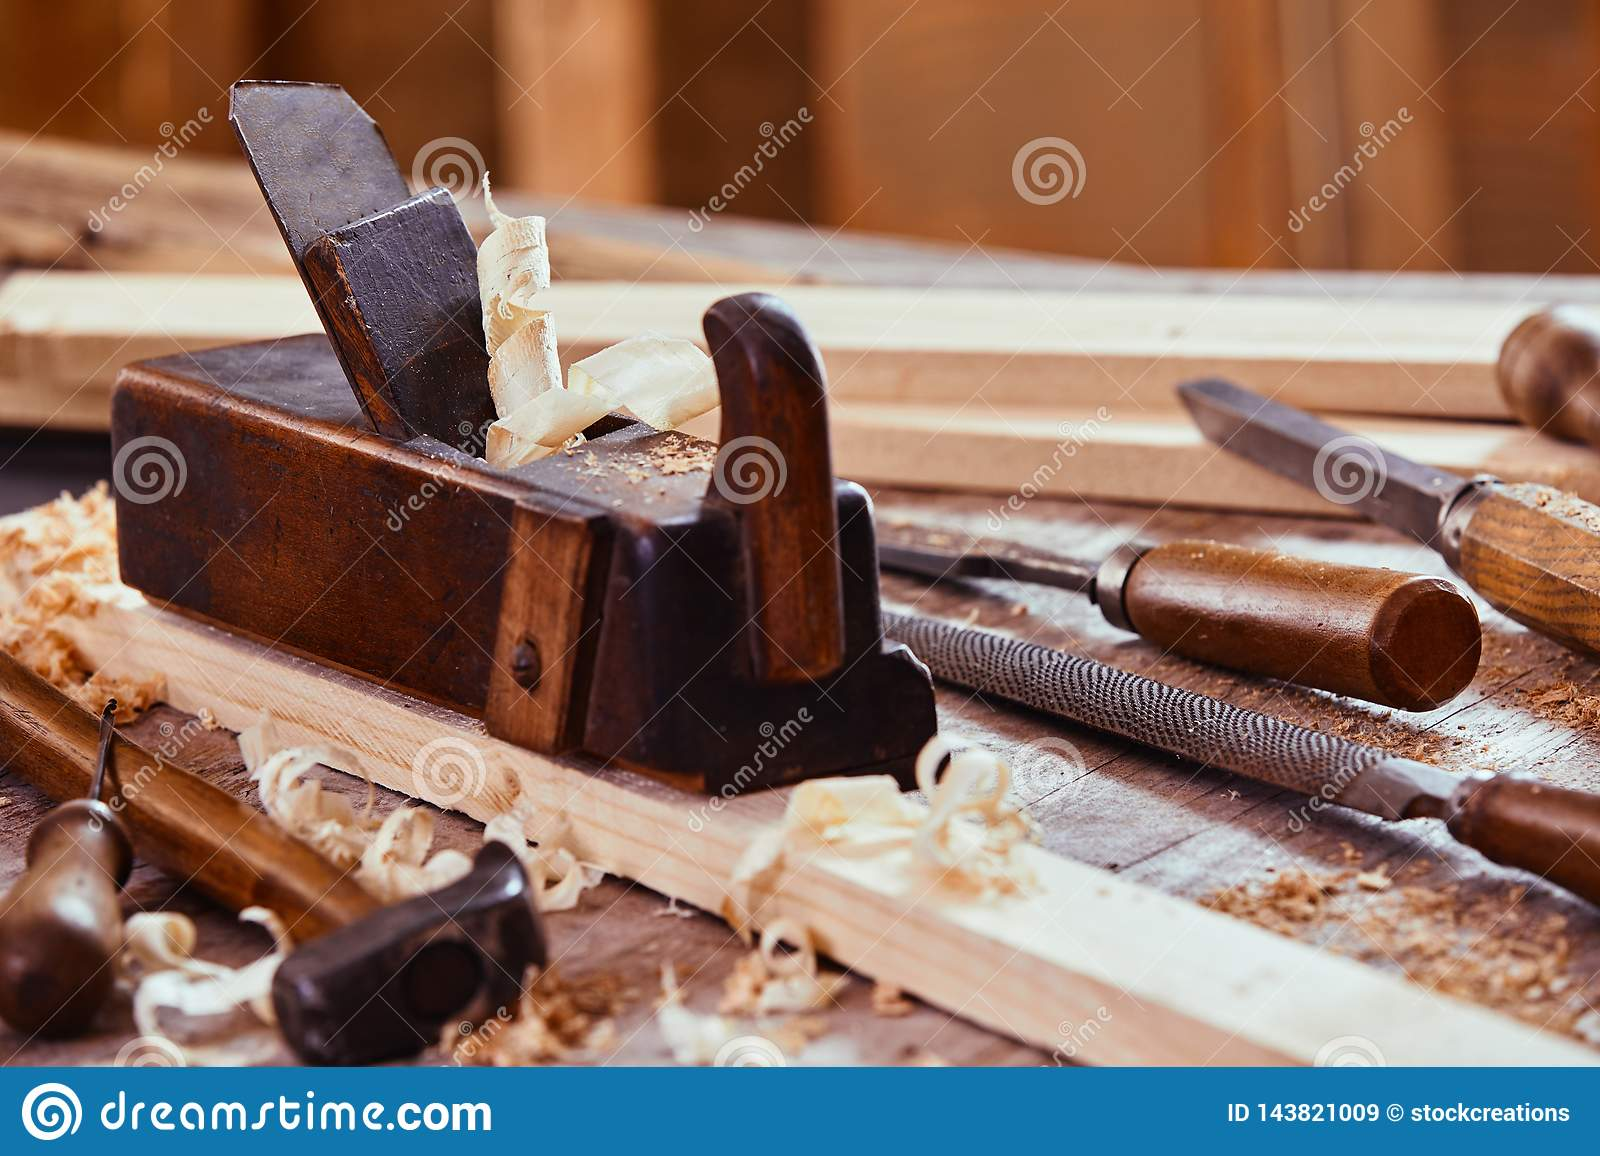 Wooden Plane With Rasp, File, Hammer And Chisels Stock ...